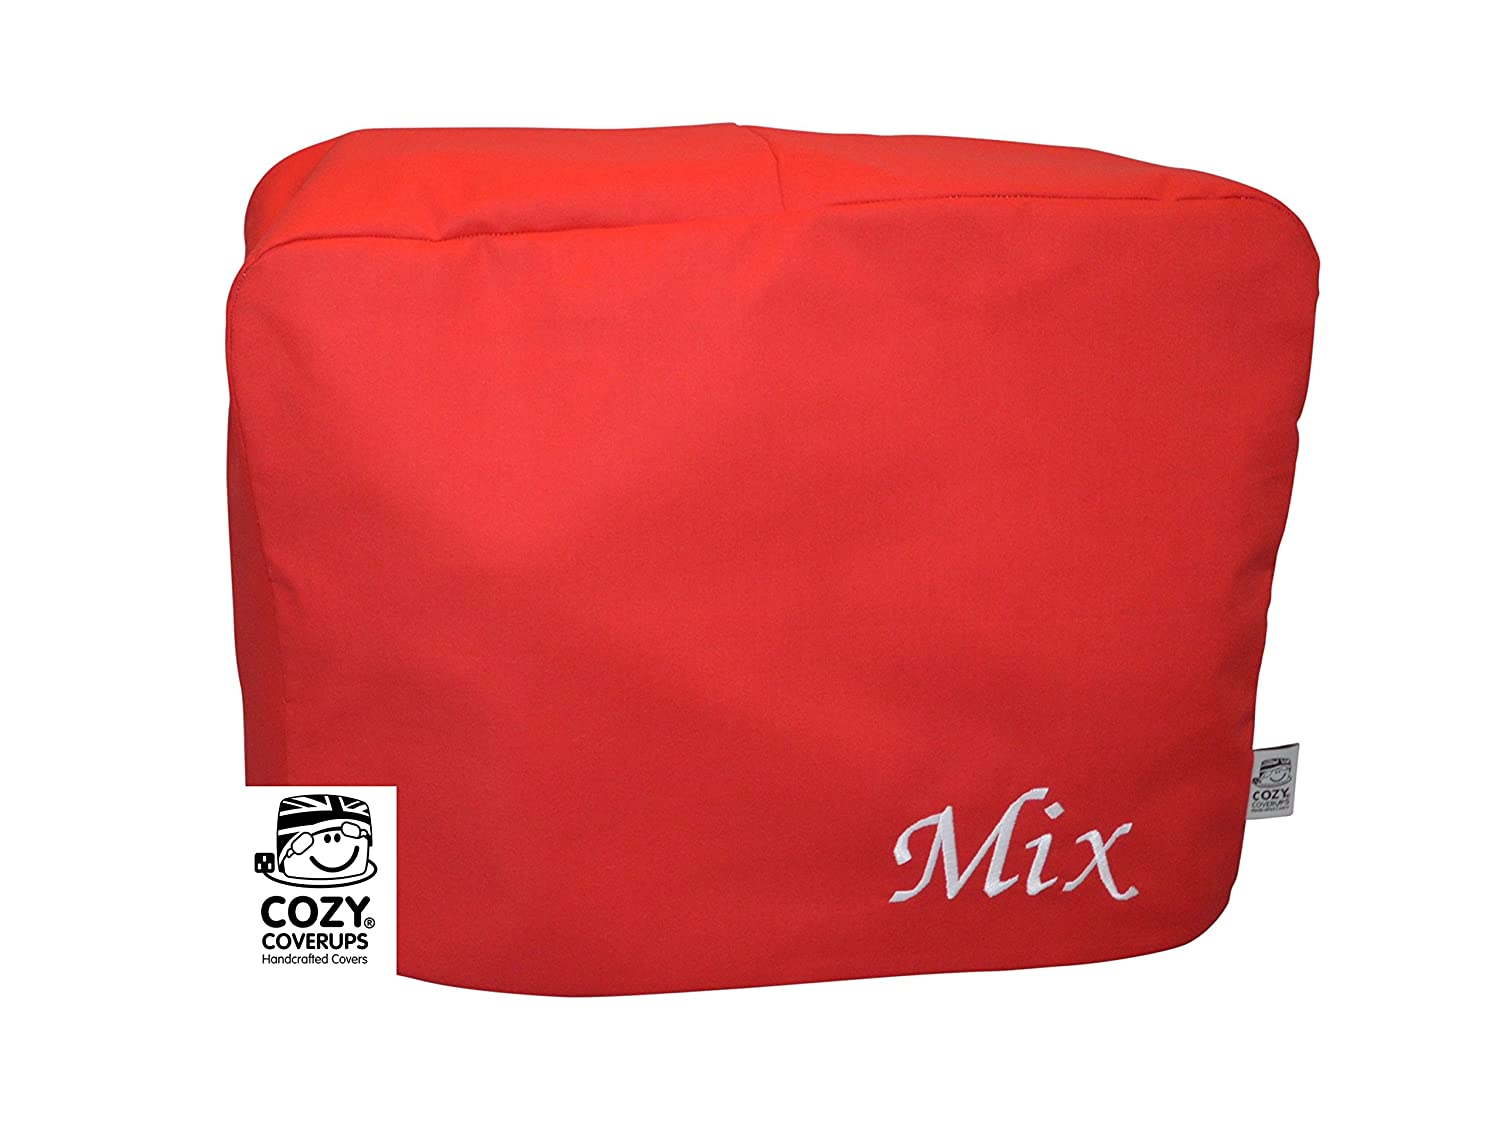 Cozycoverup® Dust Cover for Kenwood Food Mixer in Red 'Mix' Embroidered (Chef Sense XL/Chef XL Titanium KVL8300SKVL6000T KVL6100B OWKVL6021T) Coolcozycovers LTD